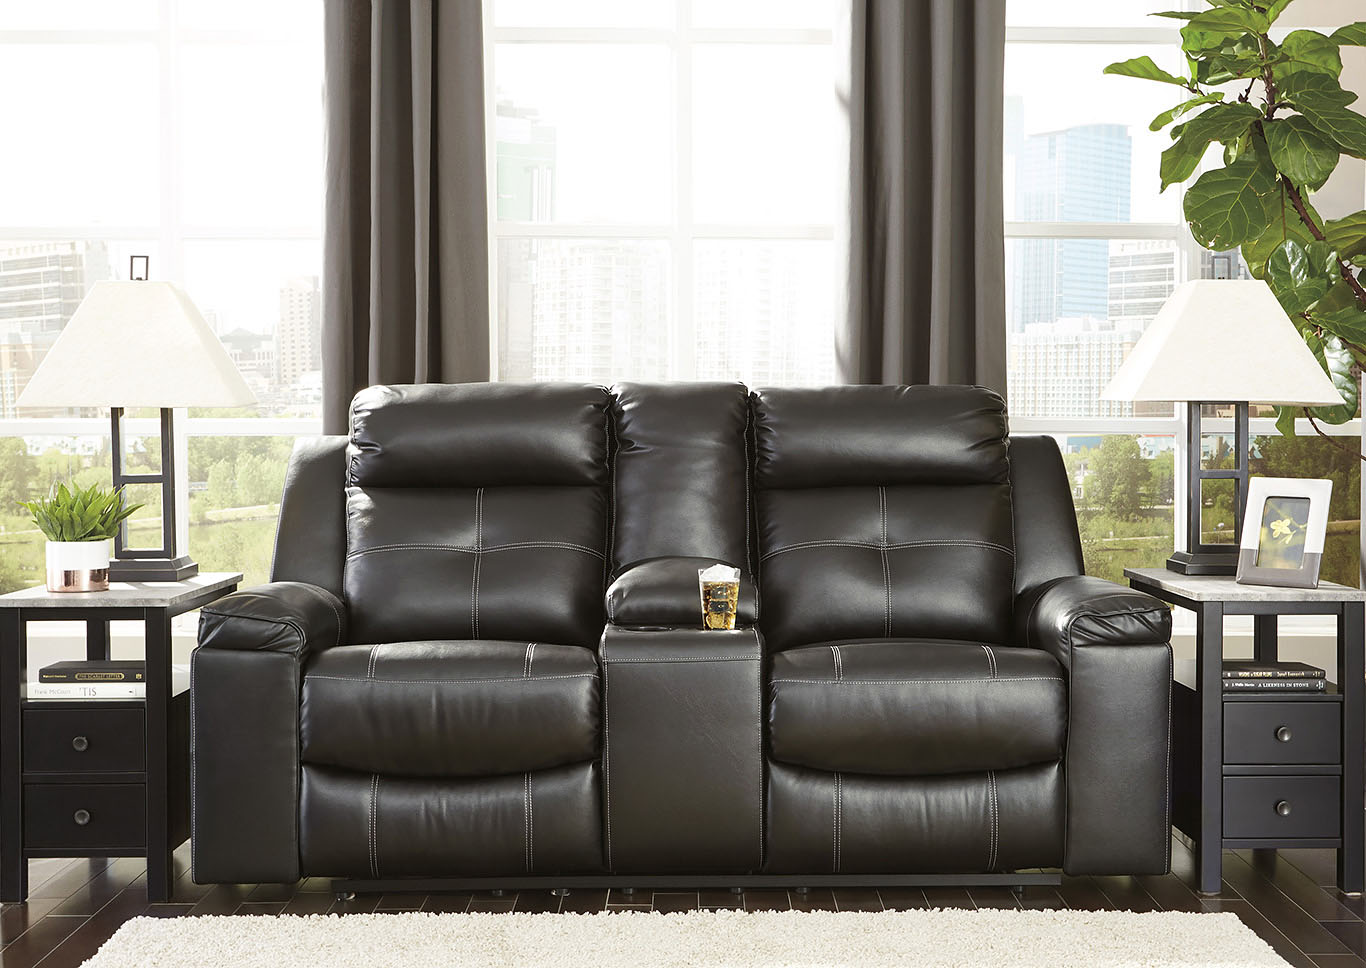 Kempten Black Recliner Loveseat w/Console,Signature Design By Ashley